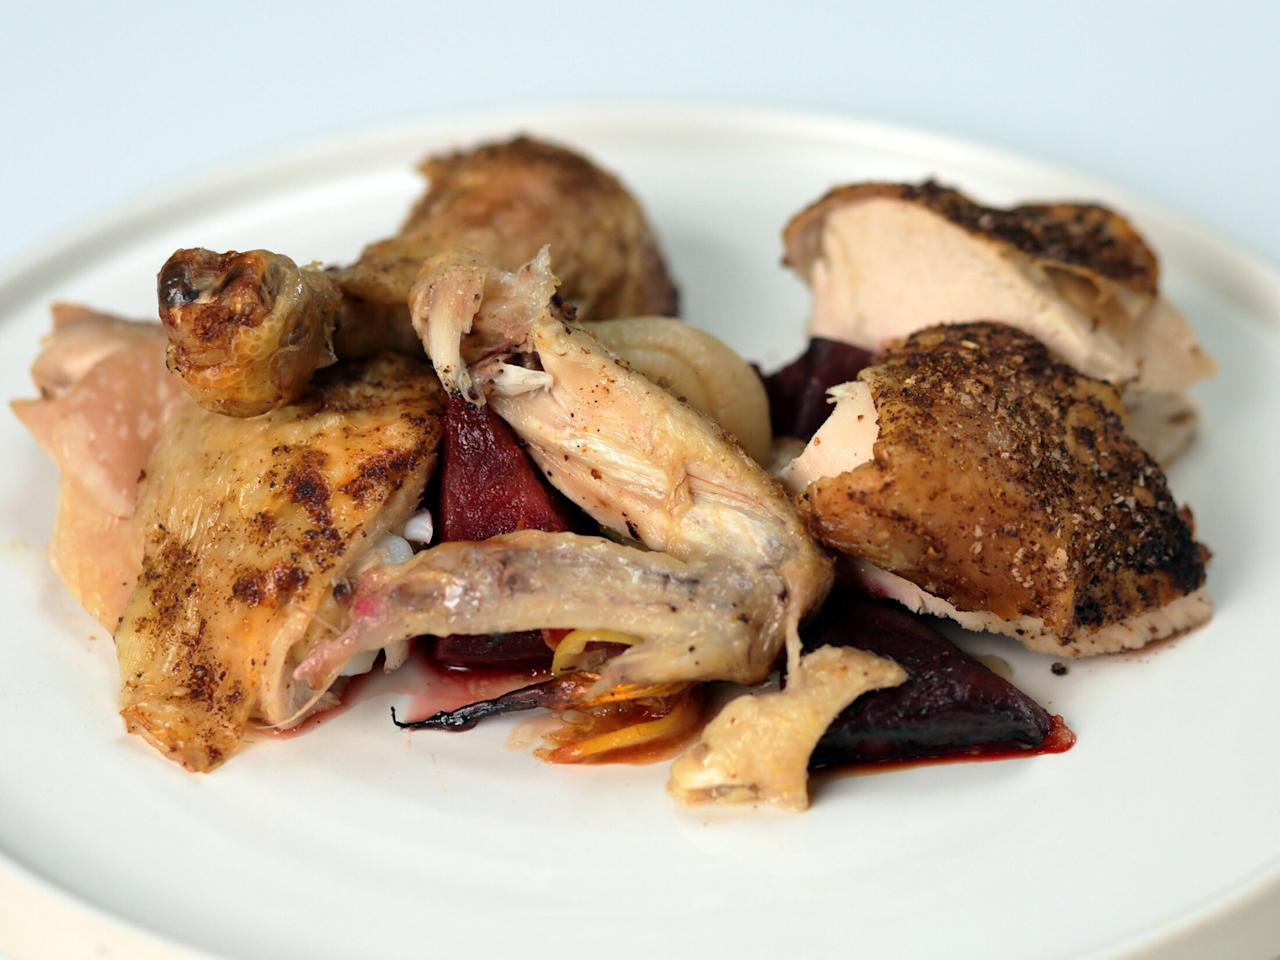 "<p>This recipe for savory roast chicken and vegetables comes from NYC-based chef and cookbook author, <a href=""https://www.seamusmullen.com/"">Seamus Mullen</a>. If you find yourself with leftovers, put them to good use in <a href=""https://www.myrecipes.com/recipe/seamus-mullen-left-over-chicken-soup"">this satisfying soup</a>. </p> <p><a href=""https://www.myrecipes.com/recipe/seamus-mullen-roast-chicken"">Roast Chicken With Dukkah and Citrus Over Roasted Vegetables Recipe</a></p>"